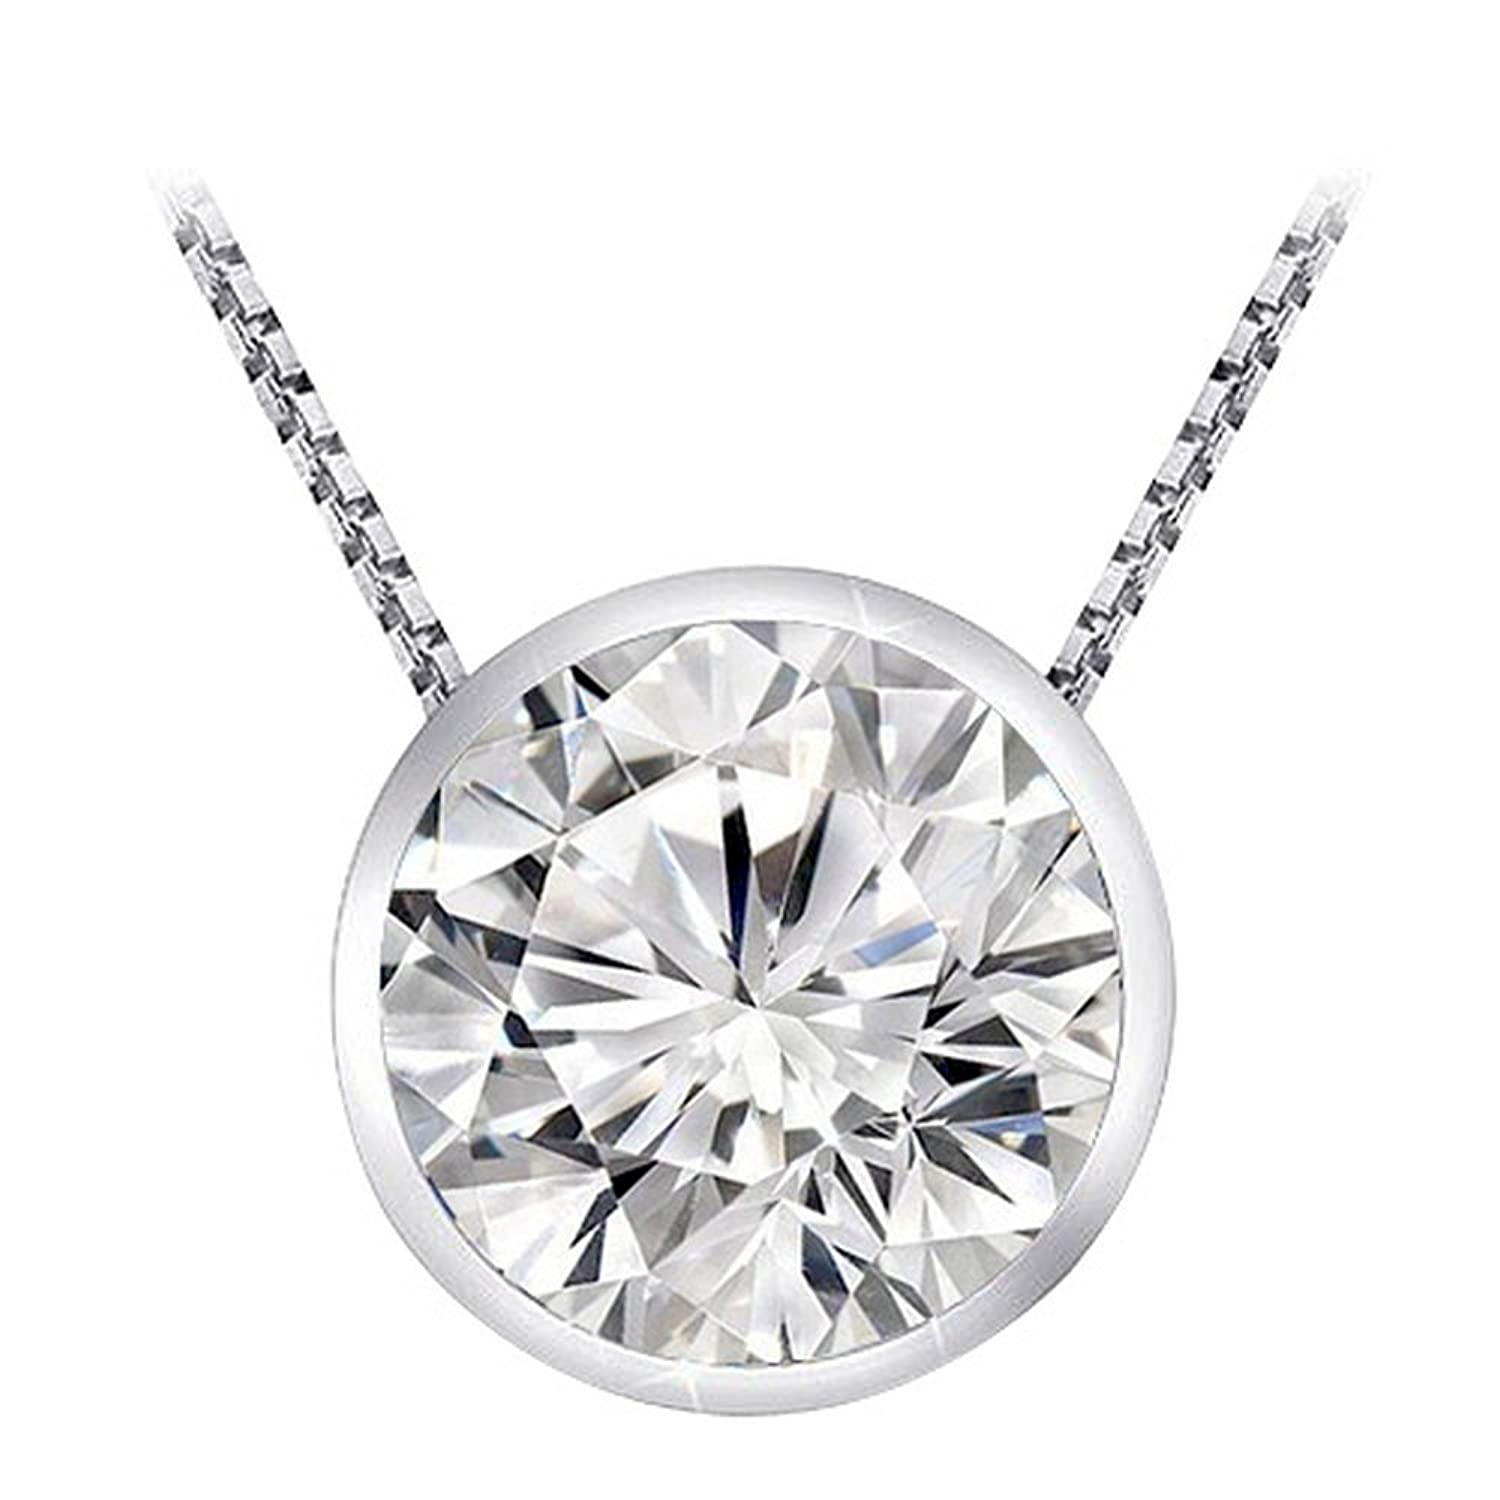 0.3 1/3 Carat 14K White Gold Round Diamond Solitaire Pendant Necklace Bezel I-J Color SI2-I1 Clarity